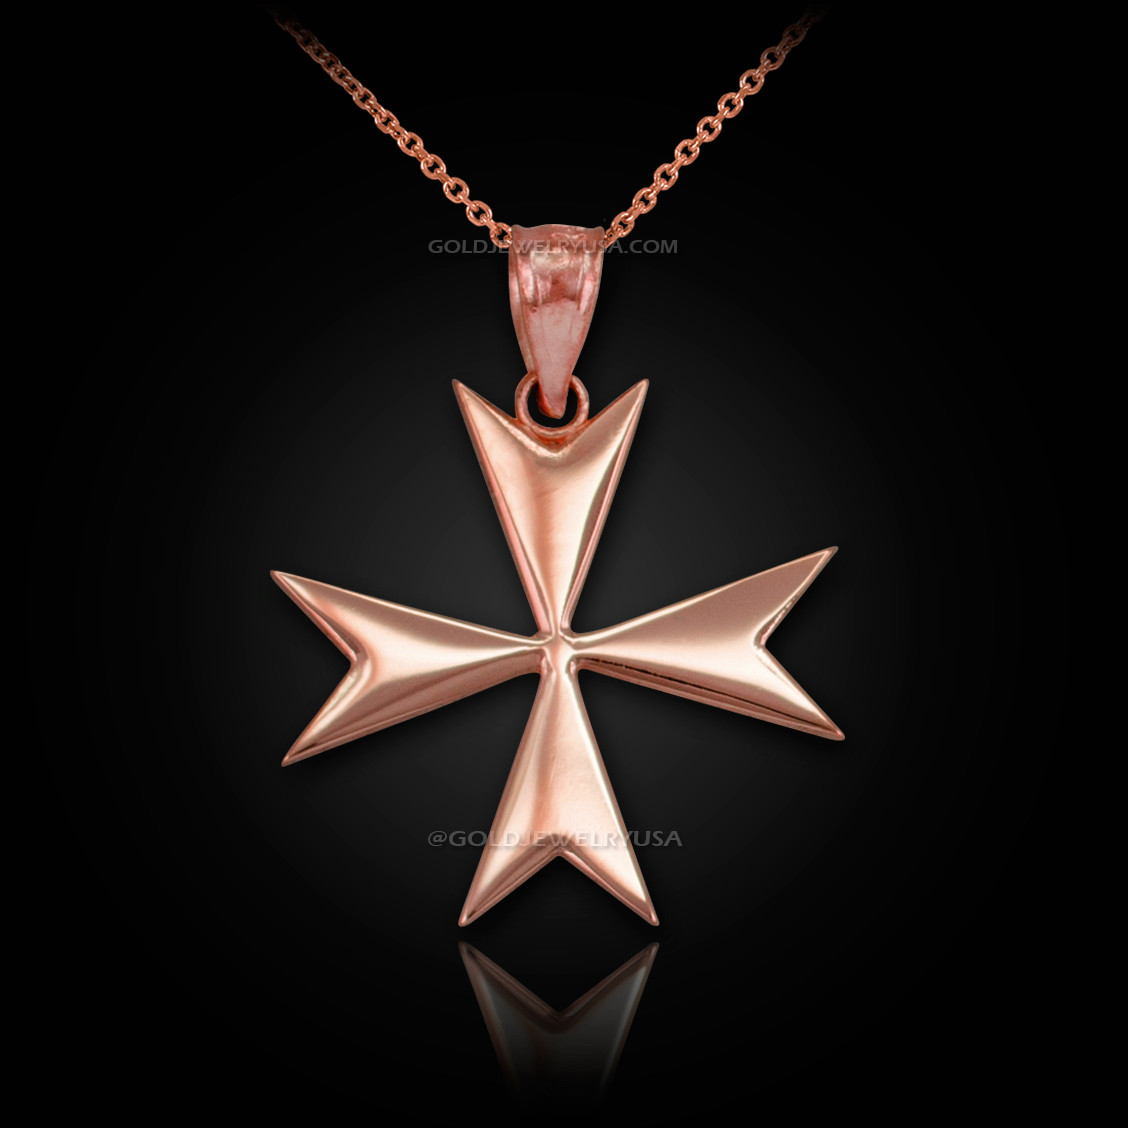 Rose gold maltese cross pendant necklace polished rose gold maltese cross pendant necklace aloadofball Image collections